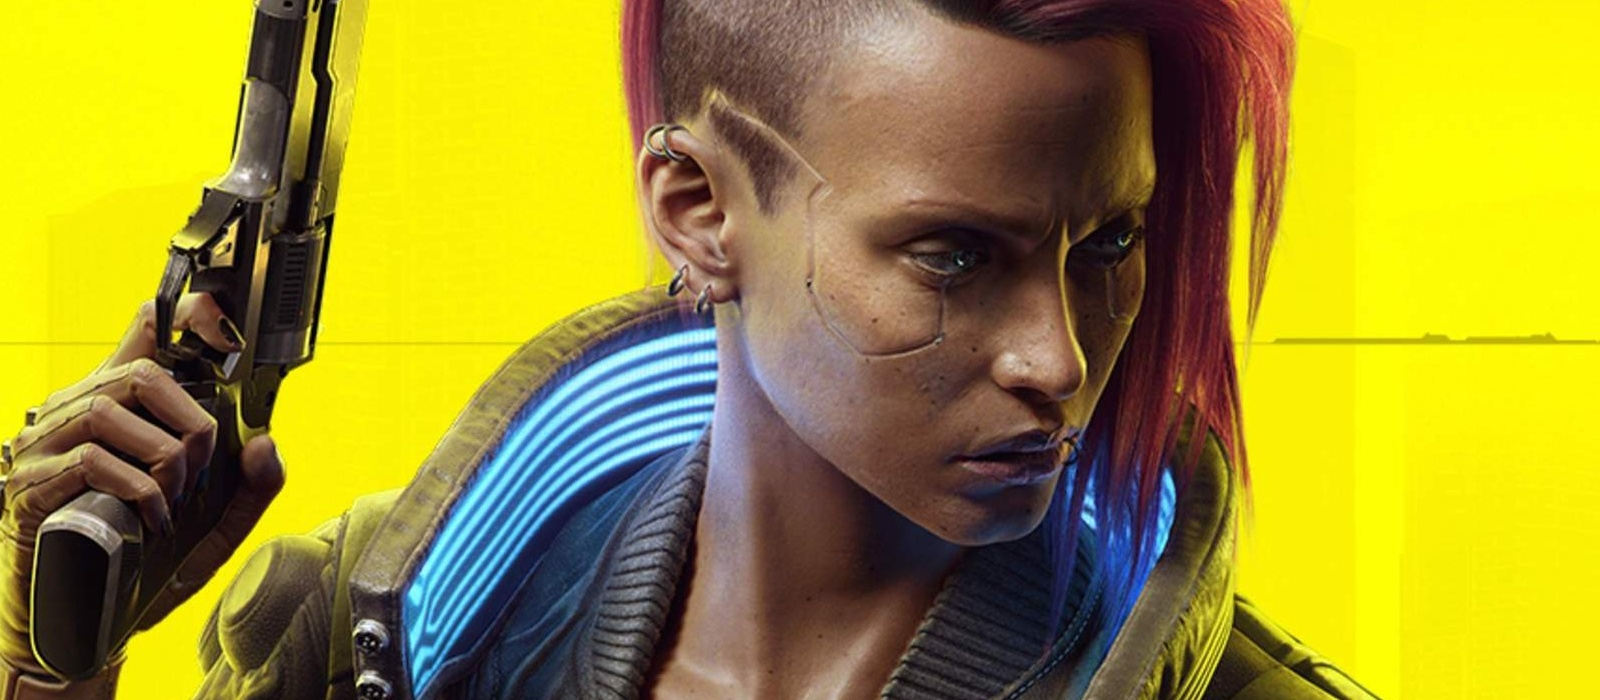 Cyberpunk 2077 developers have published new screenshots of the collaboration with Porsche